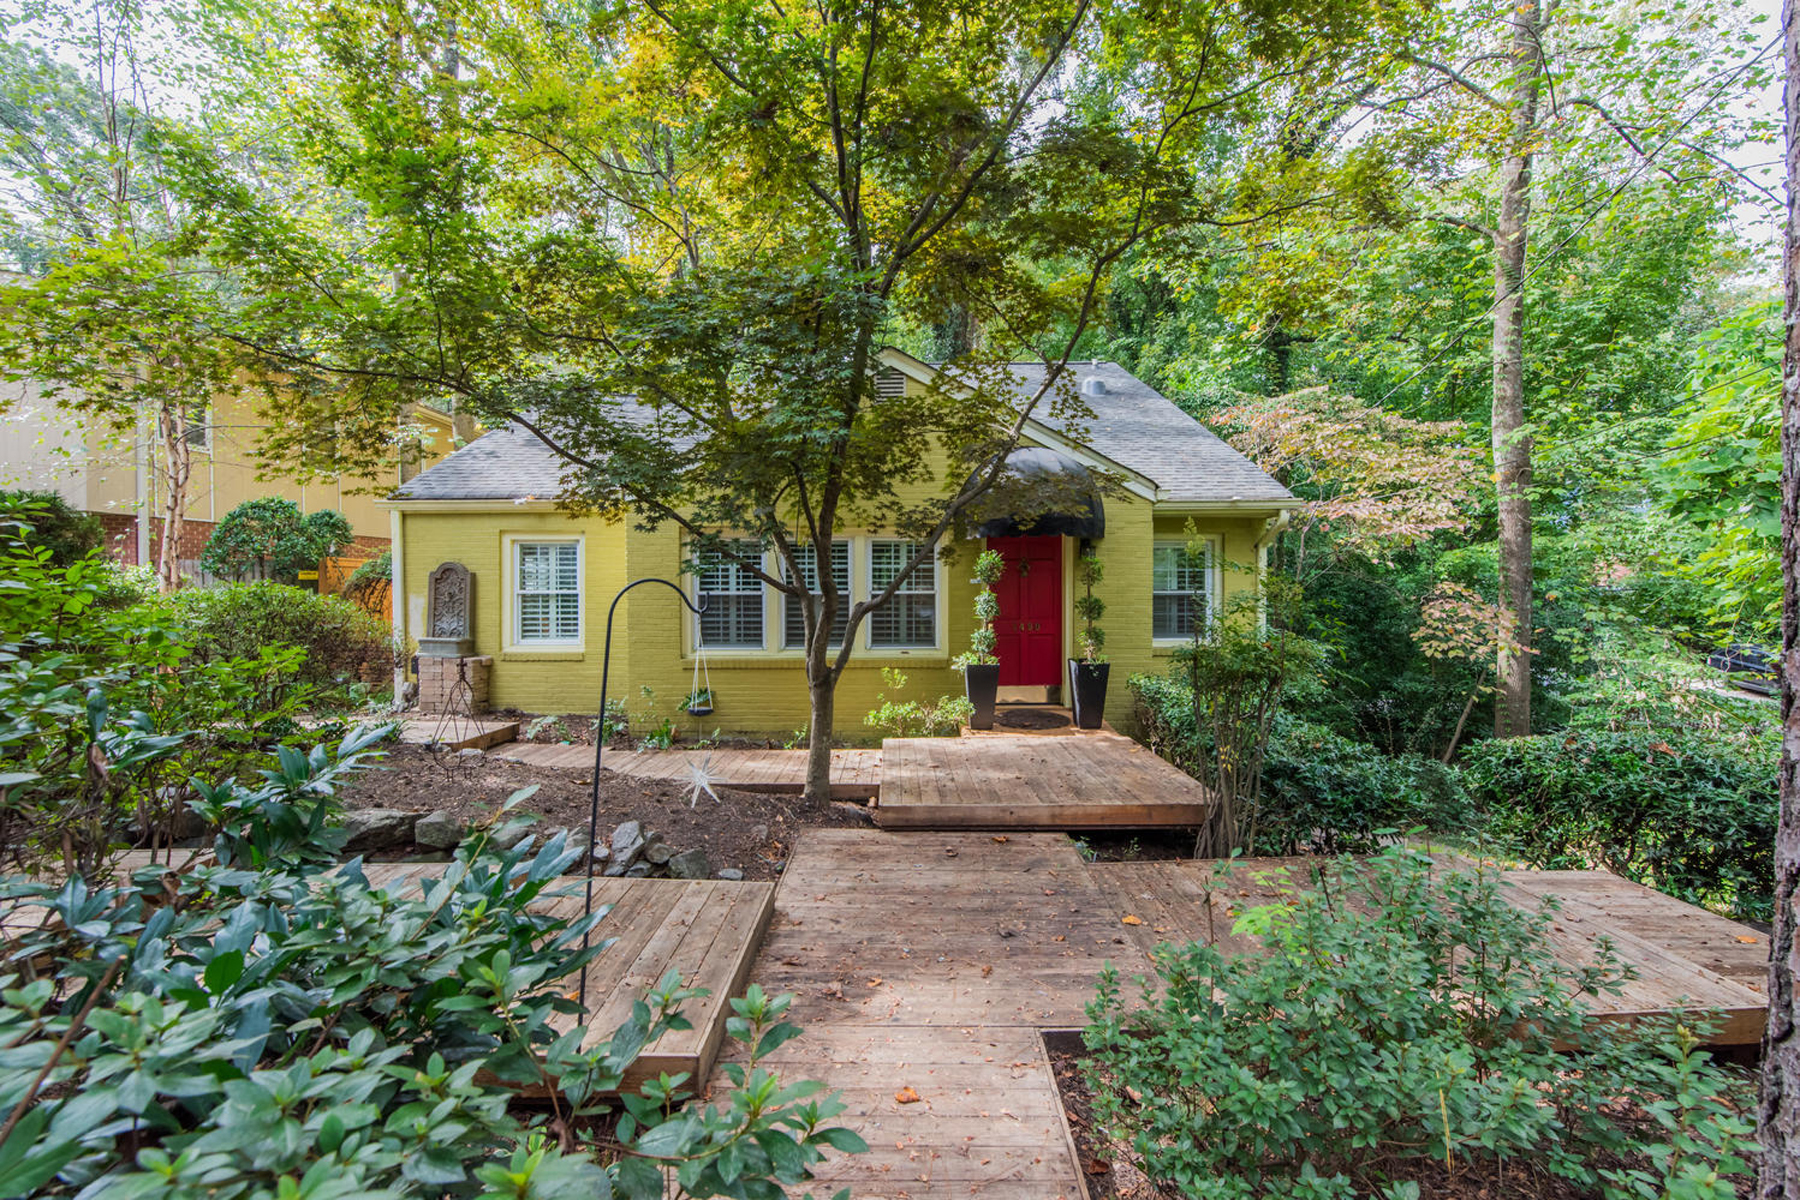 Single Family Home for Sale at Classic Morningside Bungalow 1490 Wessyngton Road NE Atlanta, Georgia 30306 United States